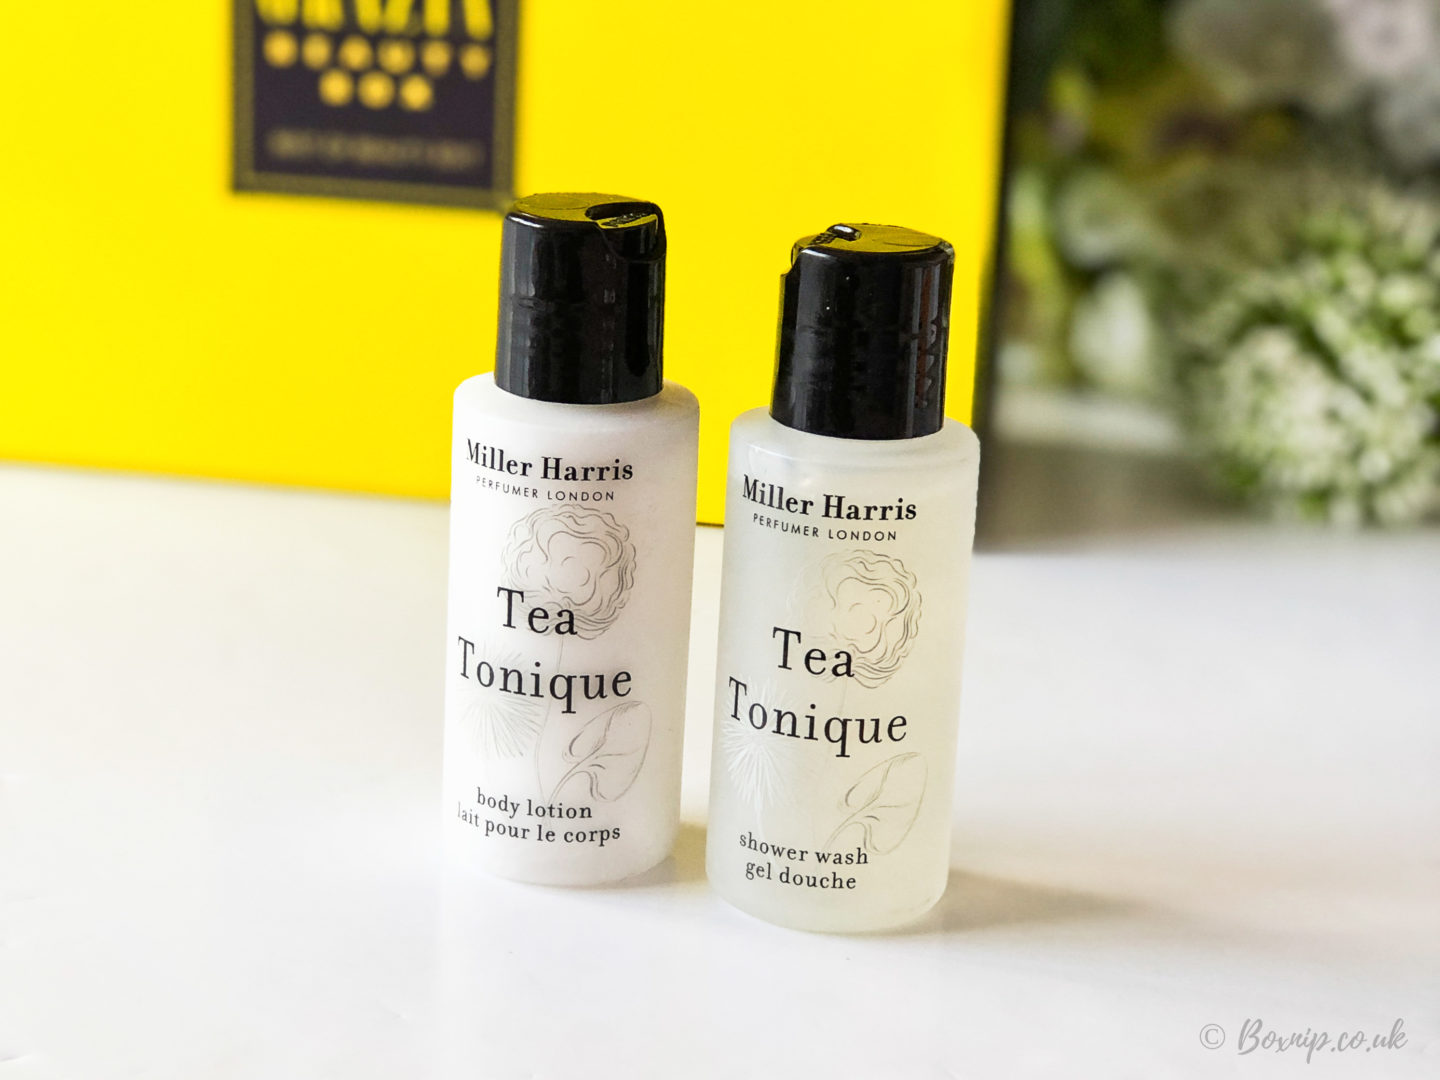 Miller Harris - Tea Tonique Shower Wash & Body Lotion